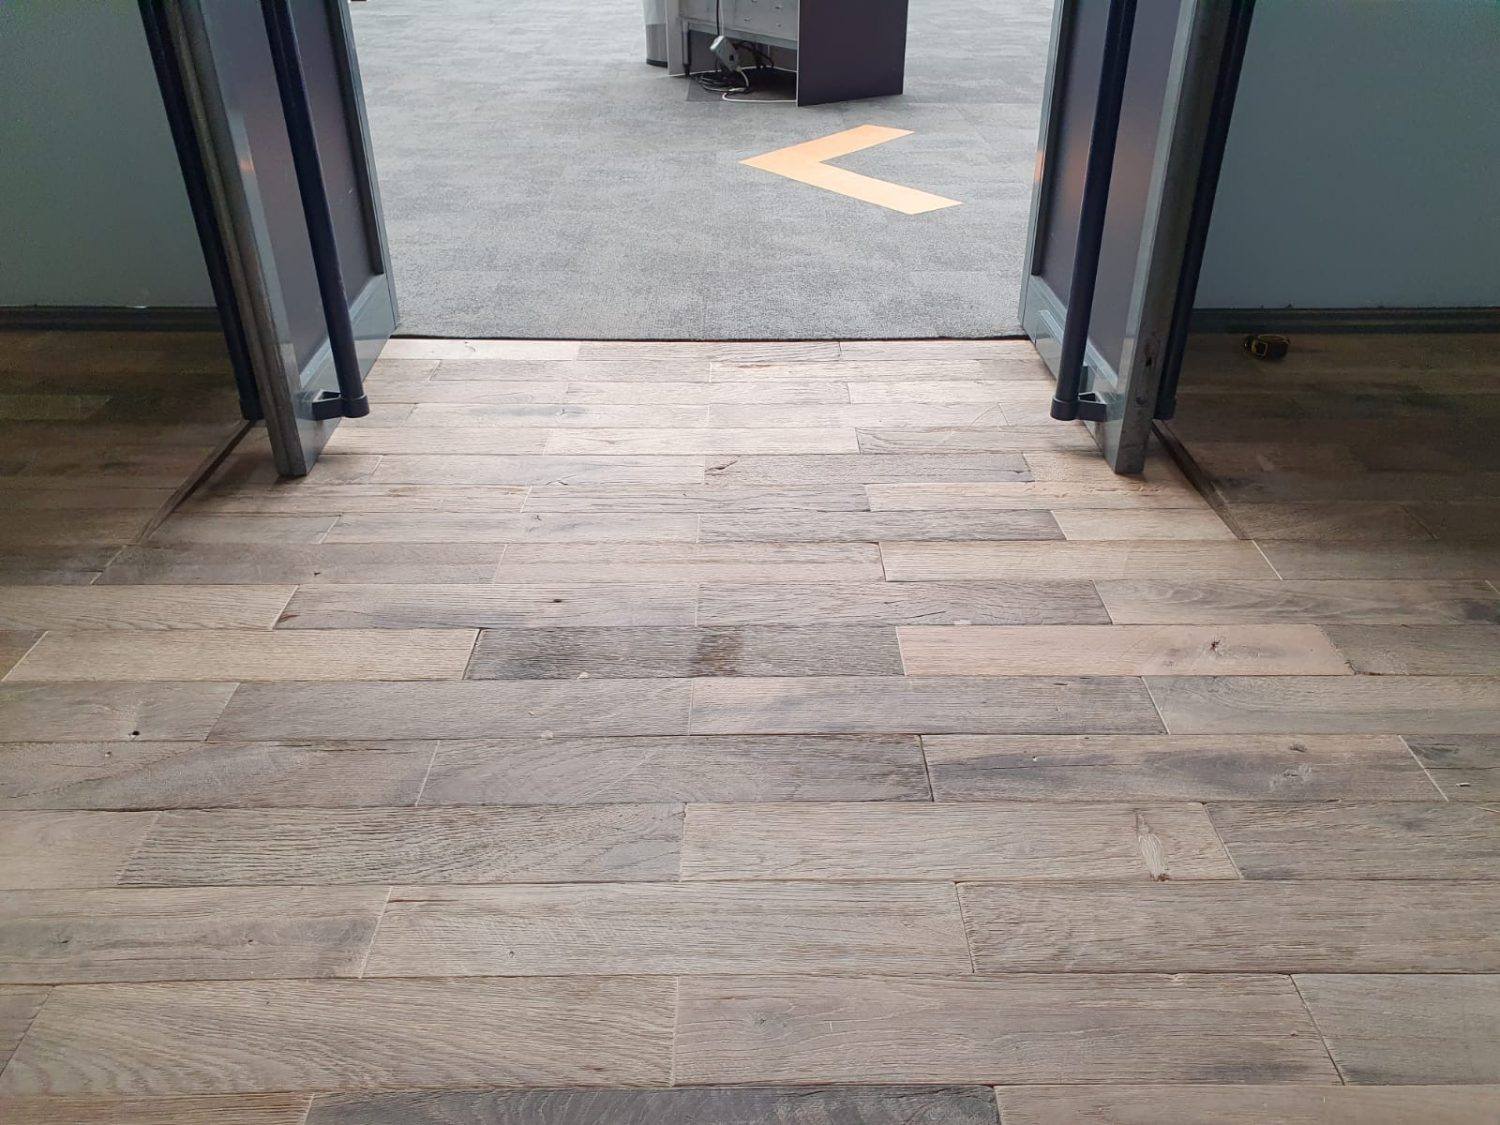 Reclaimed engineered flooring blocks laid on the showroom floor with integrated disabled ramp